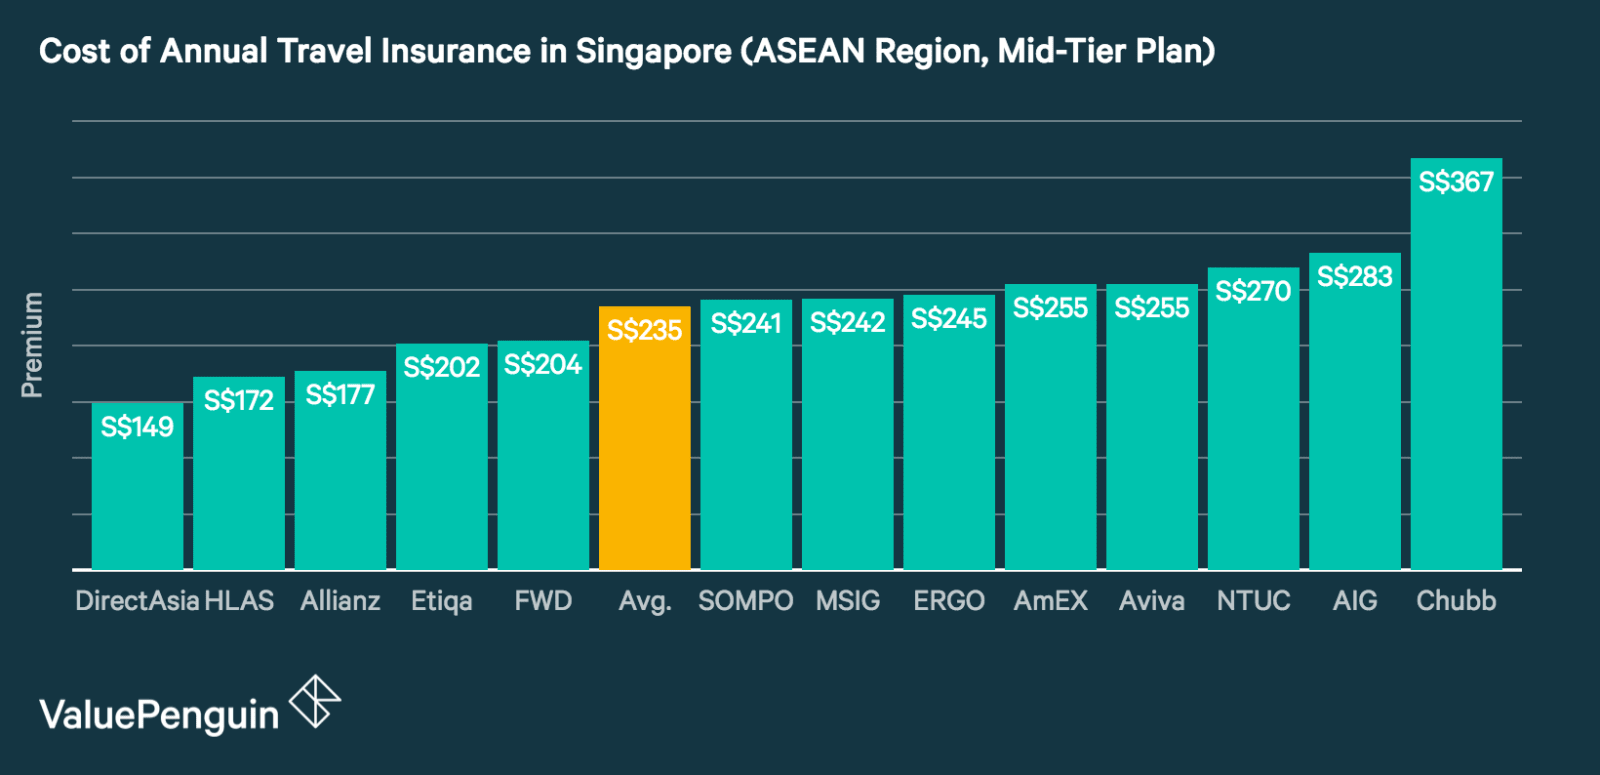 This graph shows the prices of midtier annual travel insurance plans for travel throughout the ASEAN region